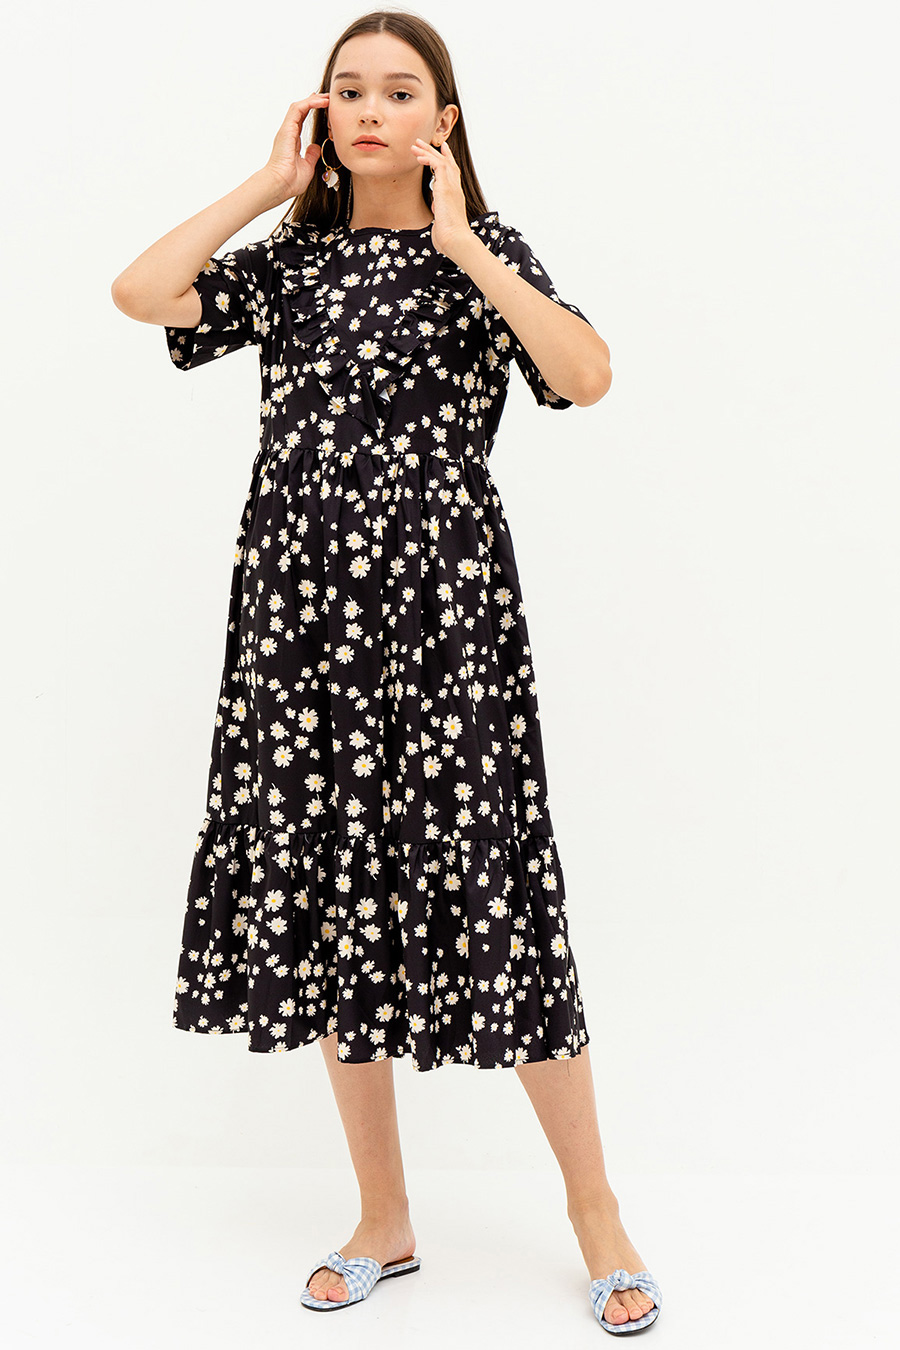 *BO* DENISE DRESS - DAISY